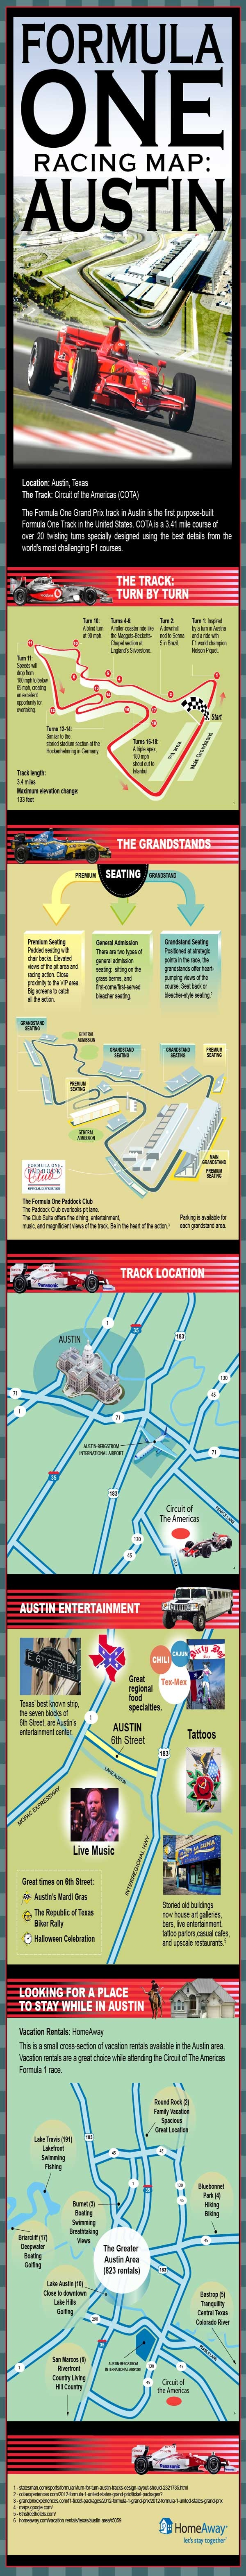 Austin Prepares To Welcome Formula One (INFOGRAPHIC)